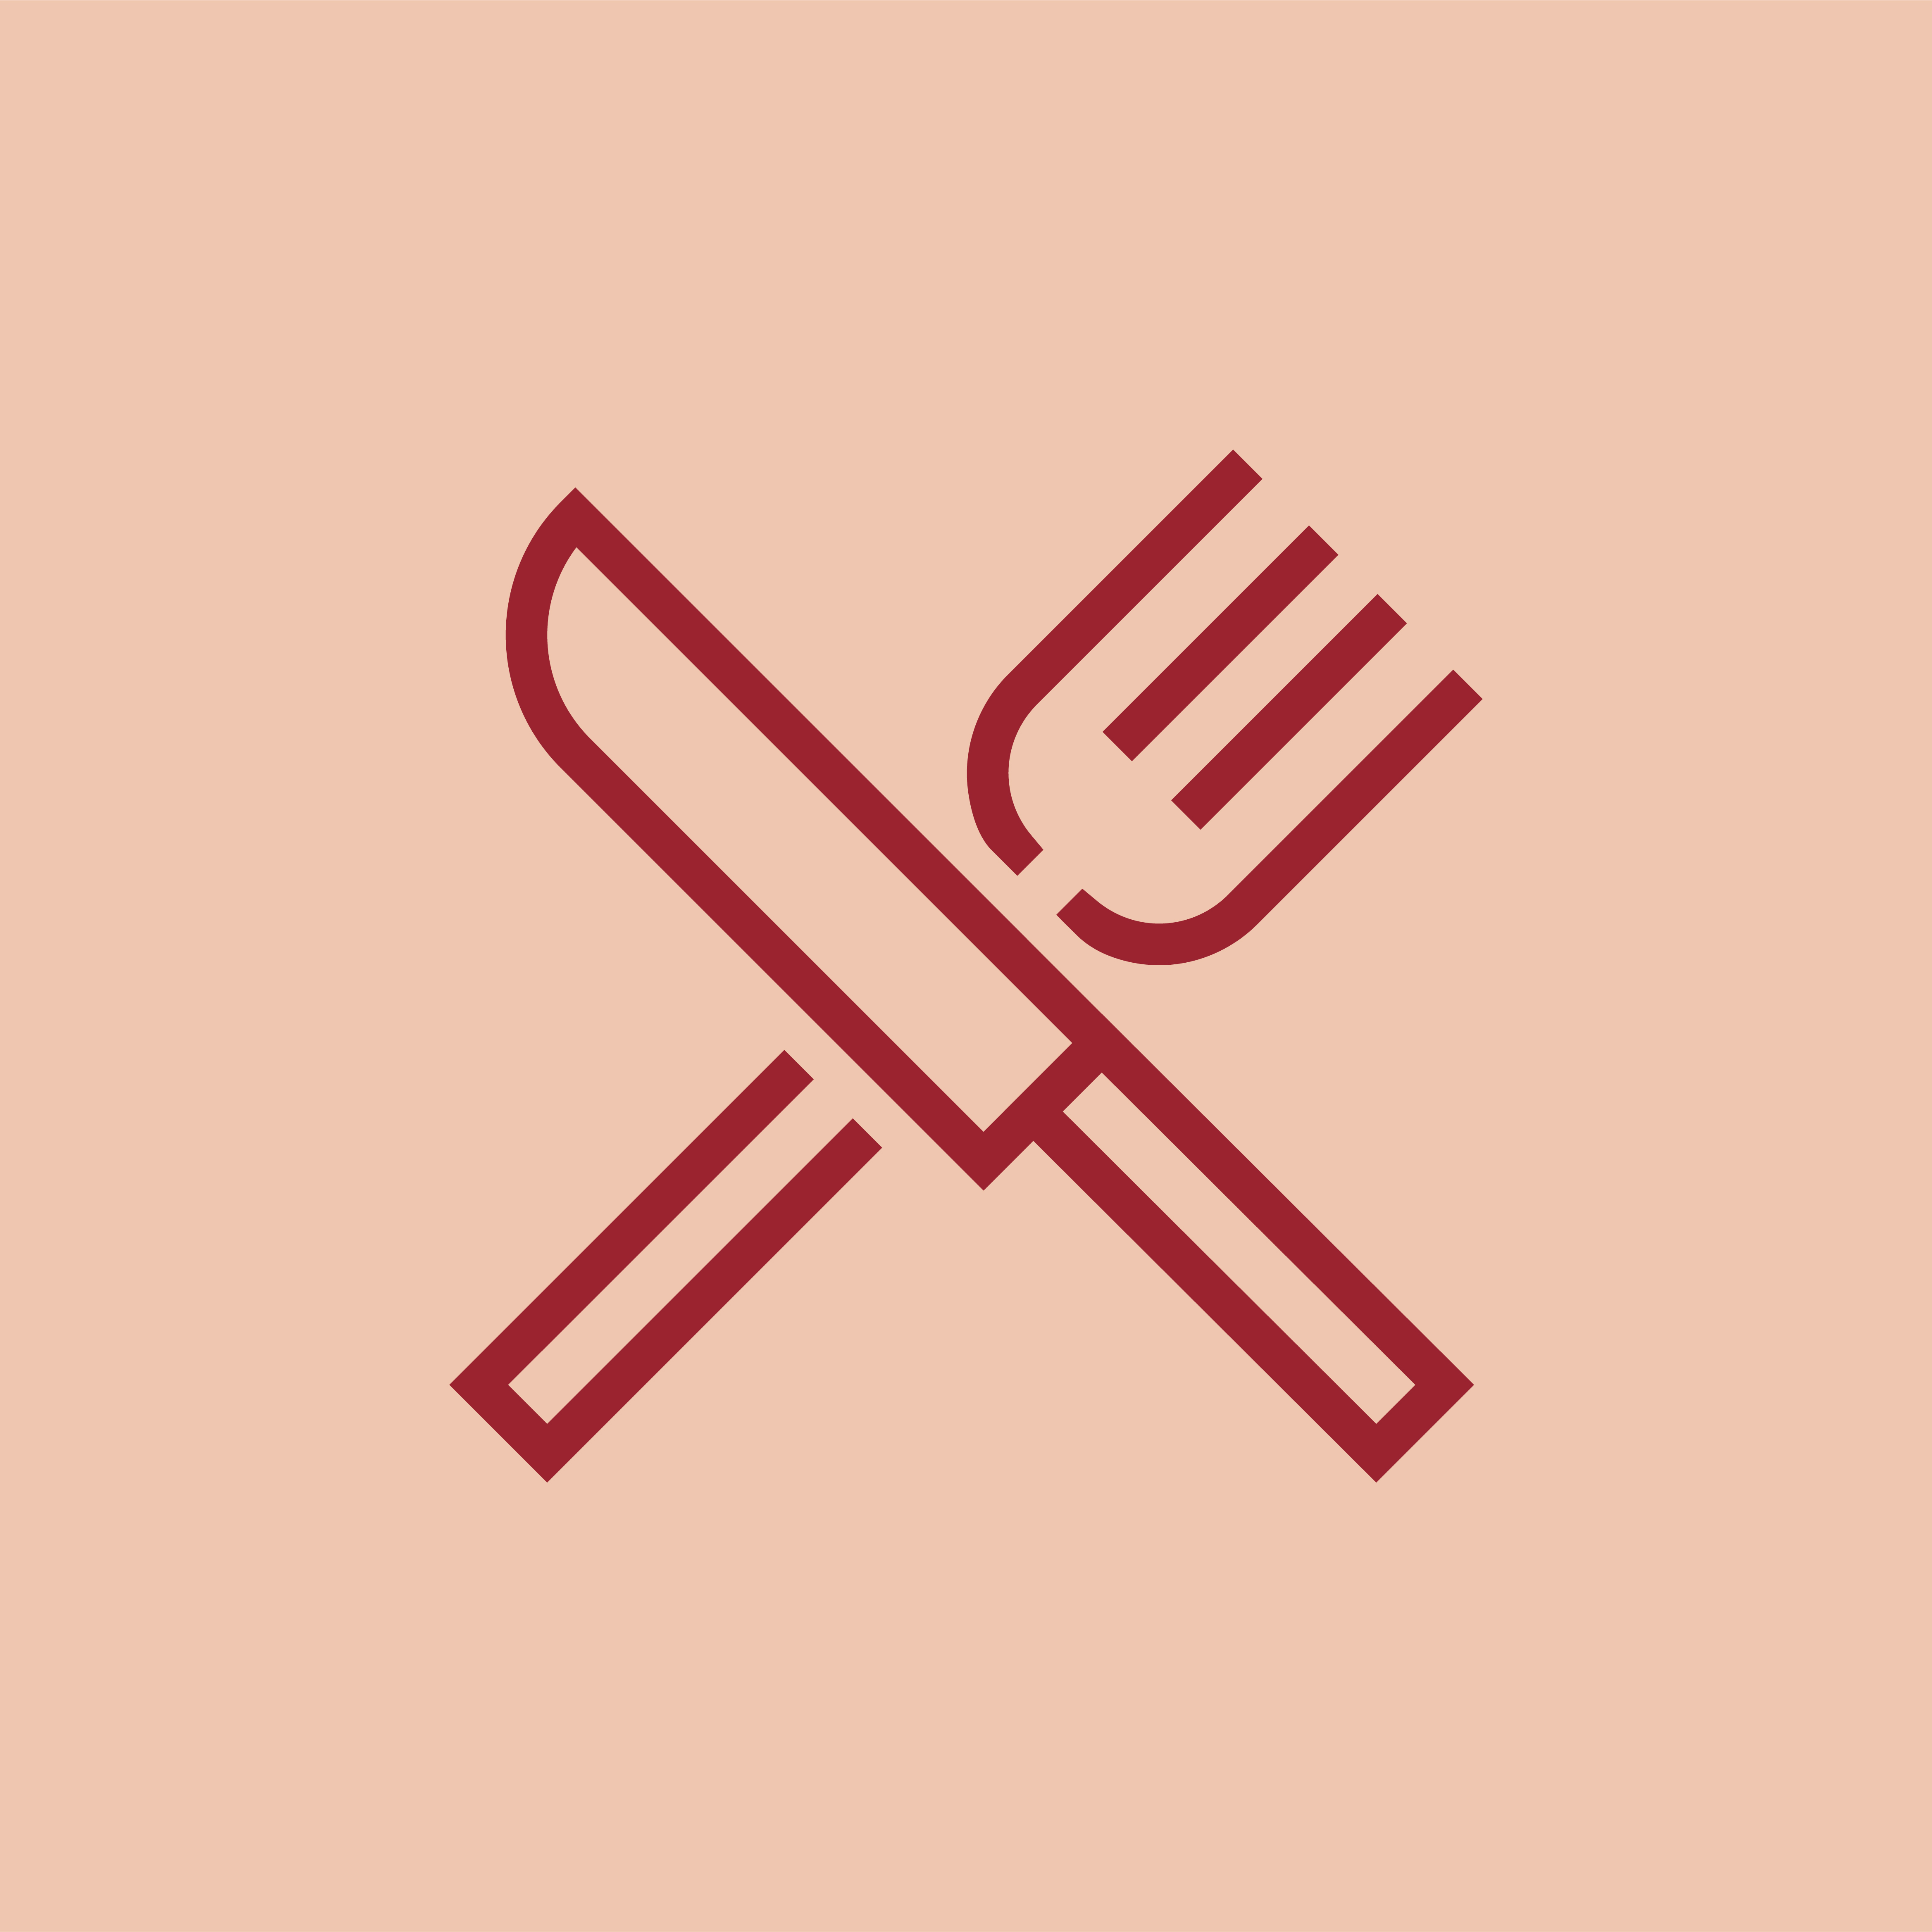 Knife And Fork Icon Free Vector Art 348 Free Downloads